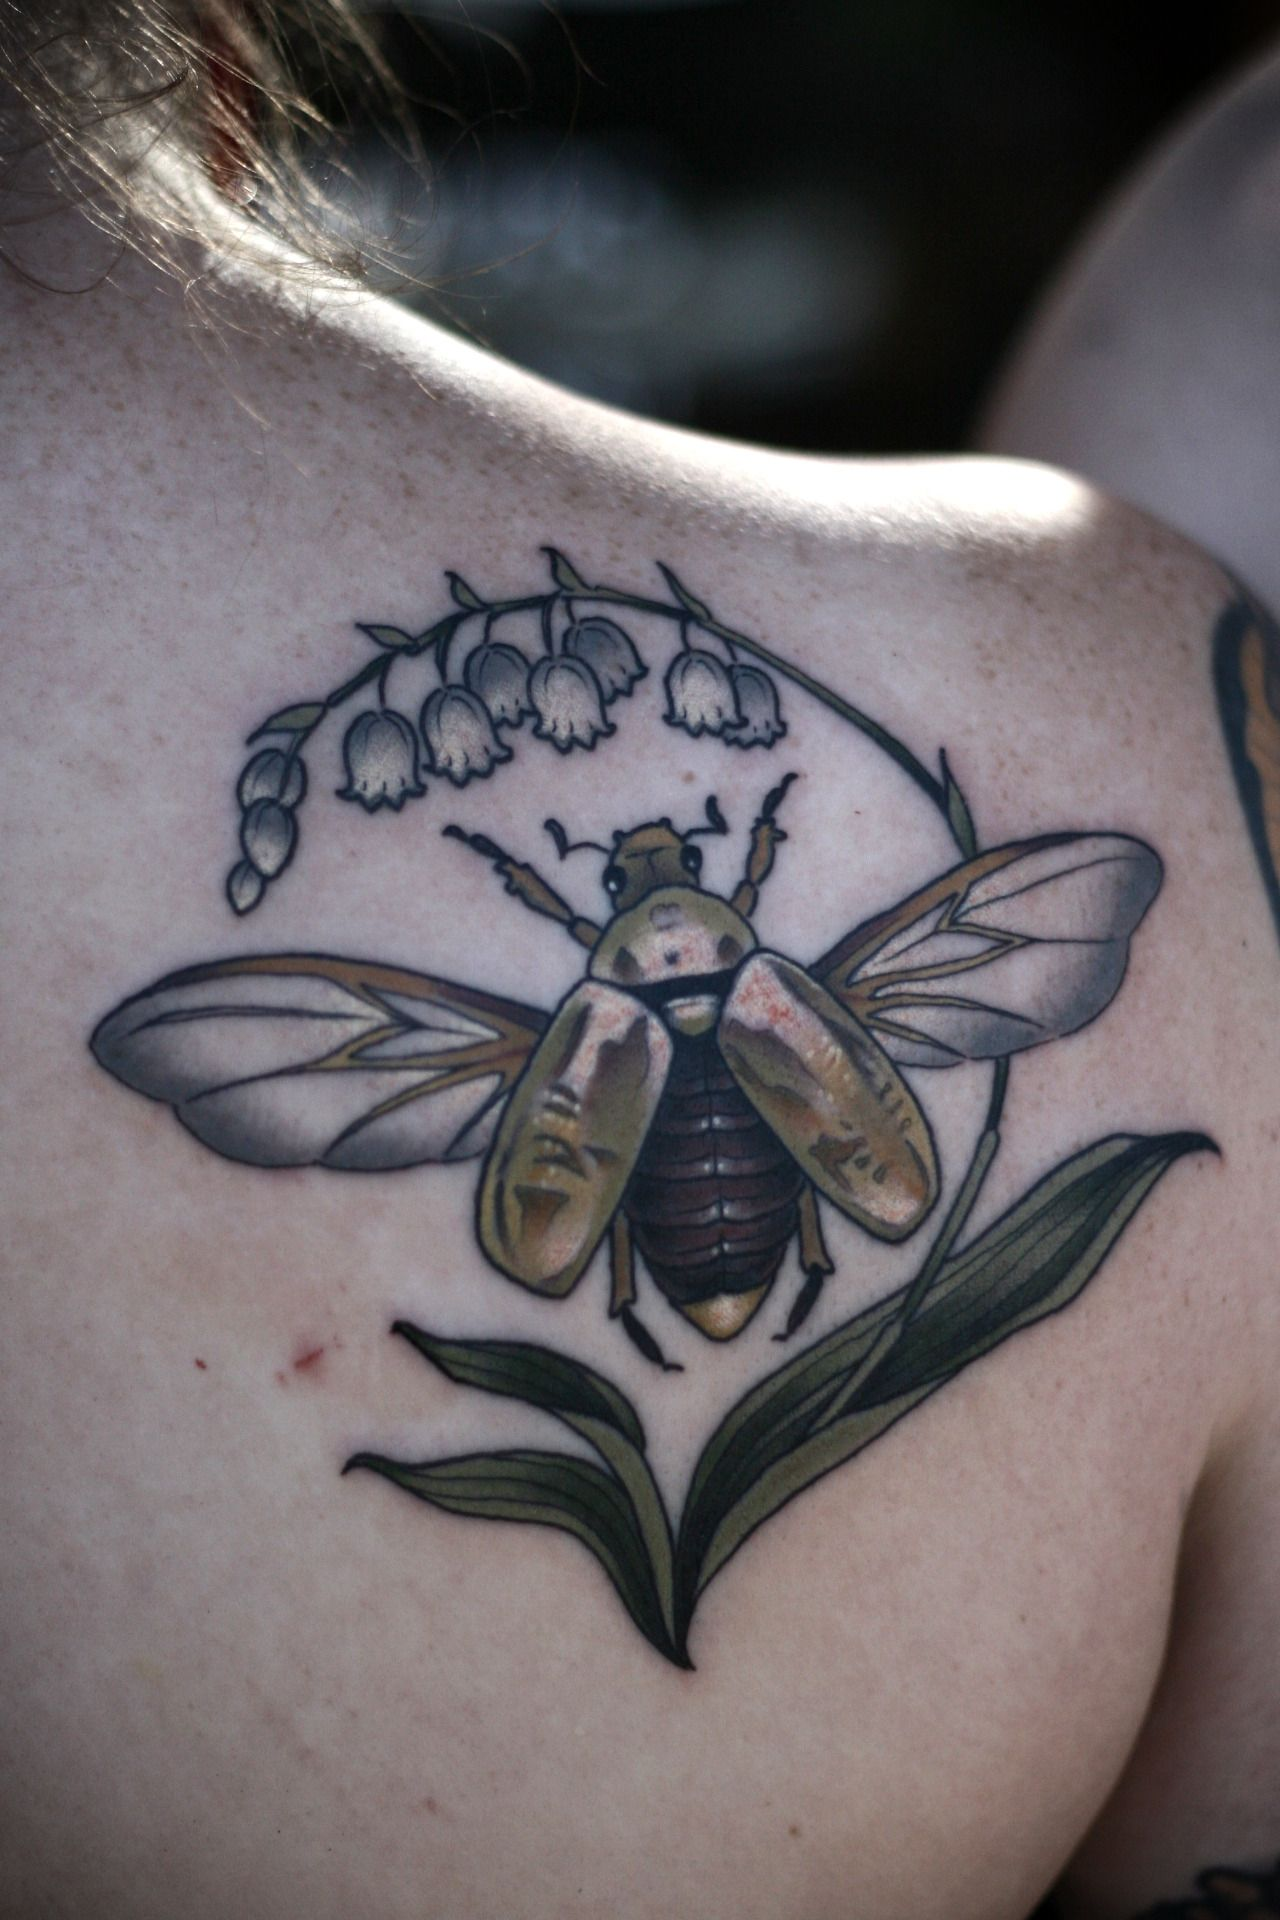 Sibling tattoos for Rachel and Justin. Jewel scarab on the